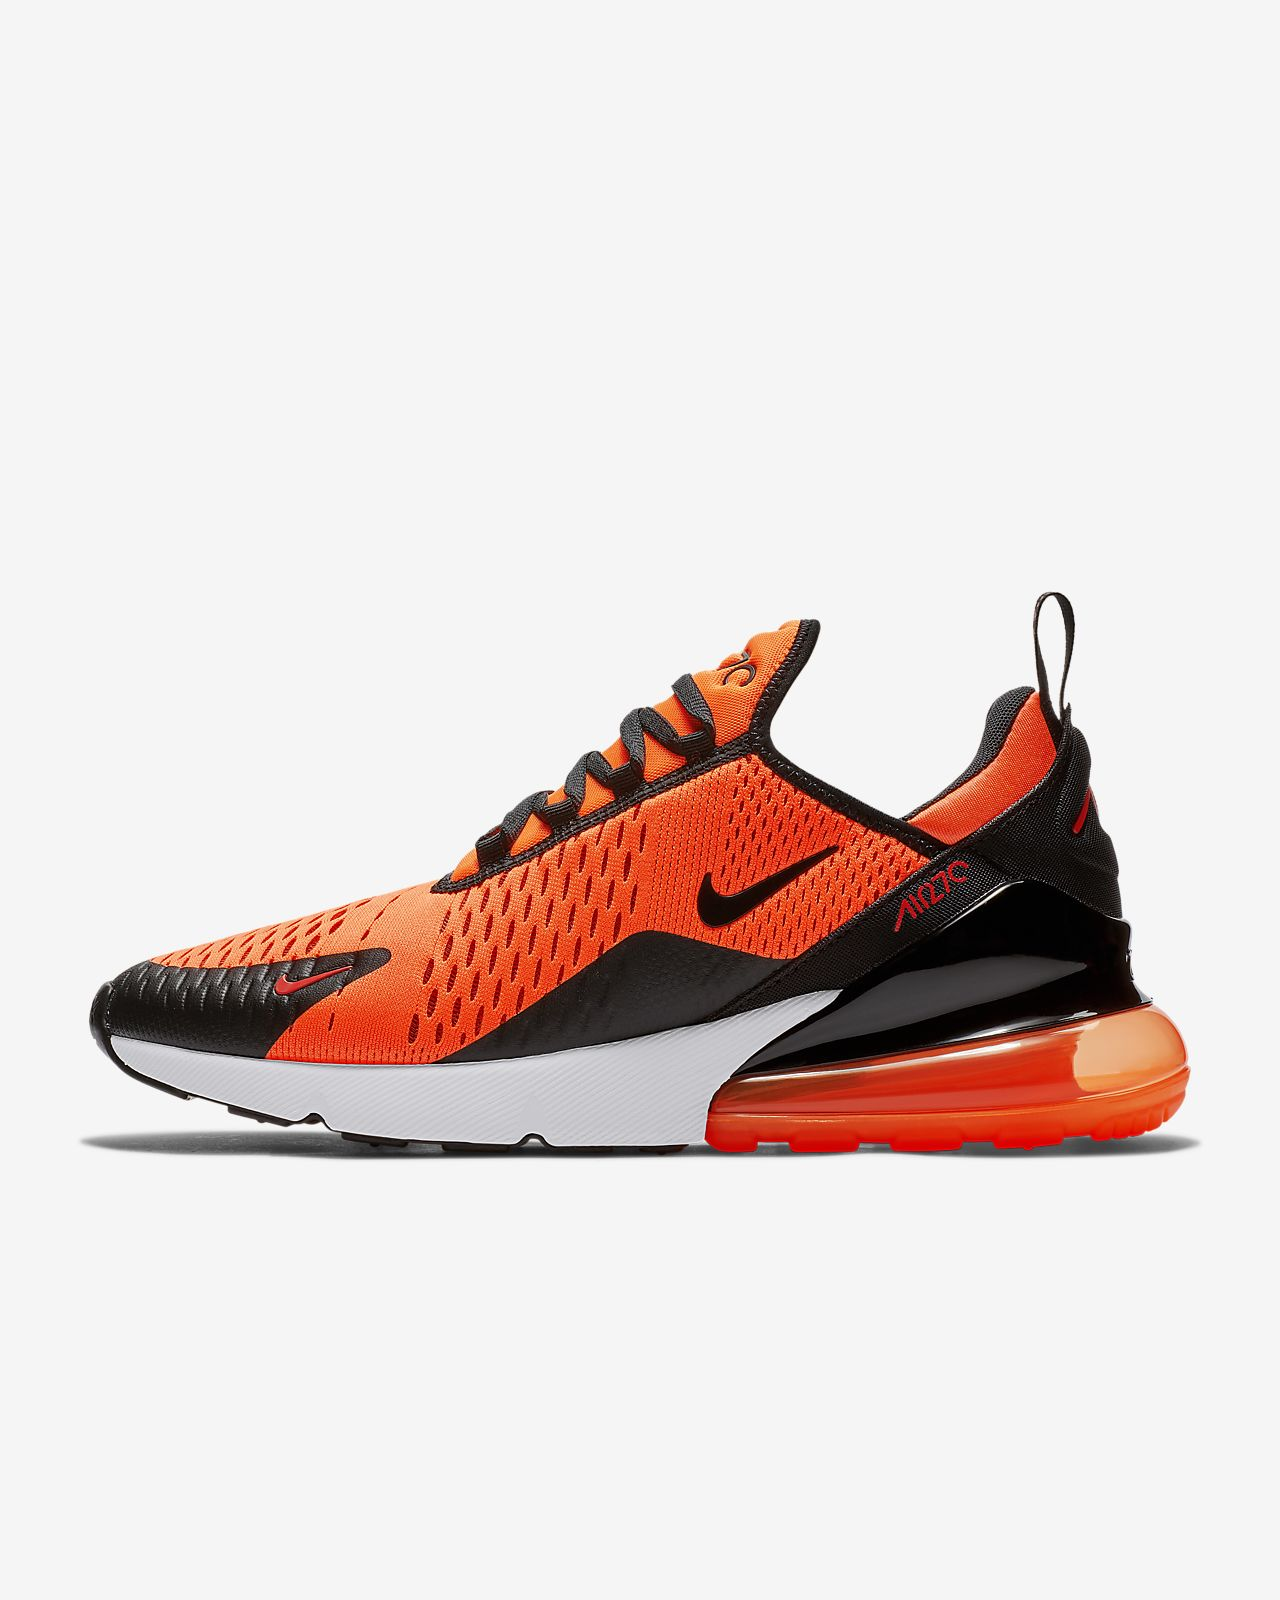 new concept f8b22 6ffee ... Nike Air Max 270 Herrenschuh